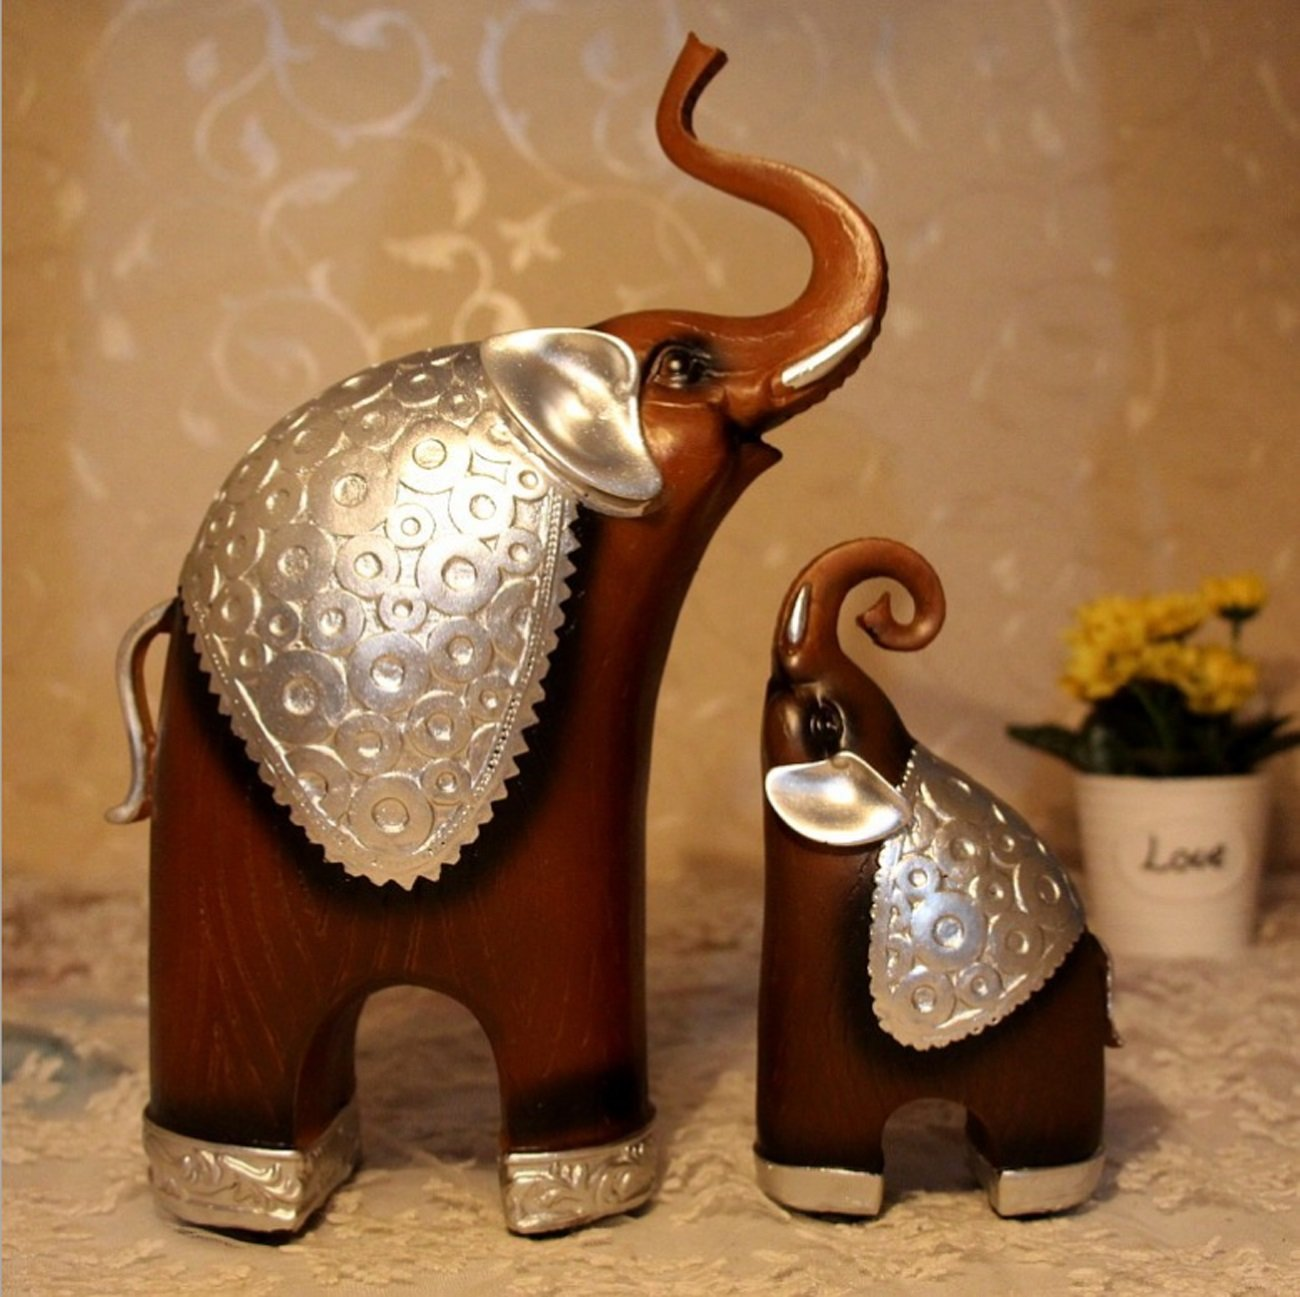 Living Room Home Furnishings Wood grain Elephant Ornaments Creative Resin Decorative Crafts by LHFJ (Image #2)